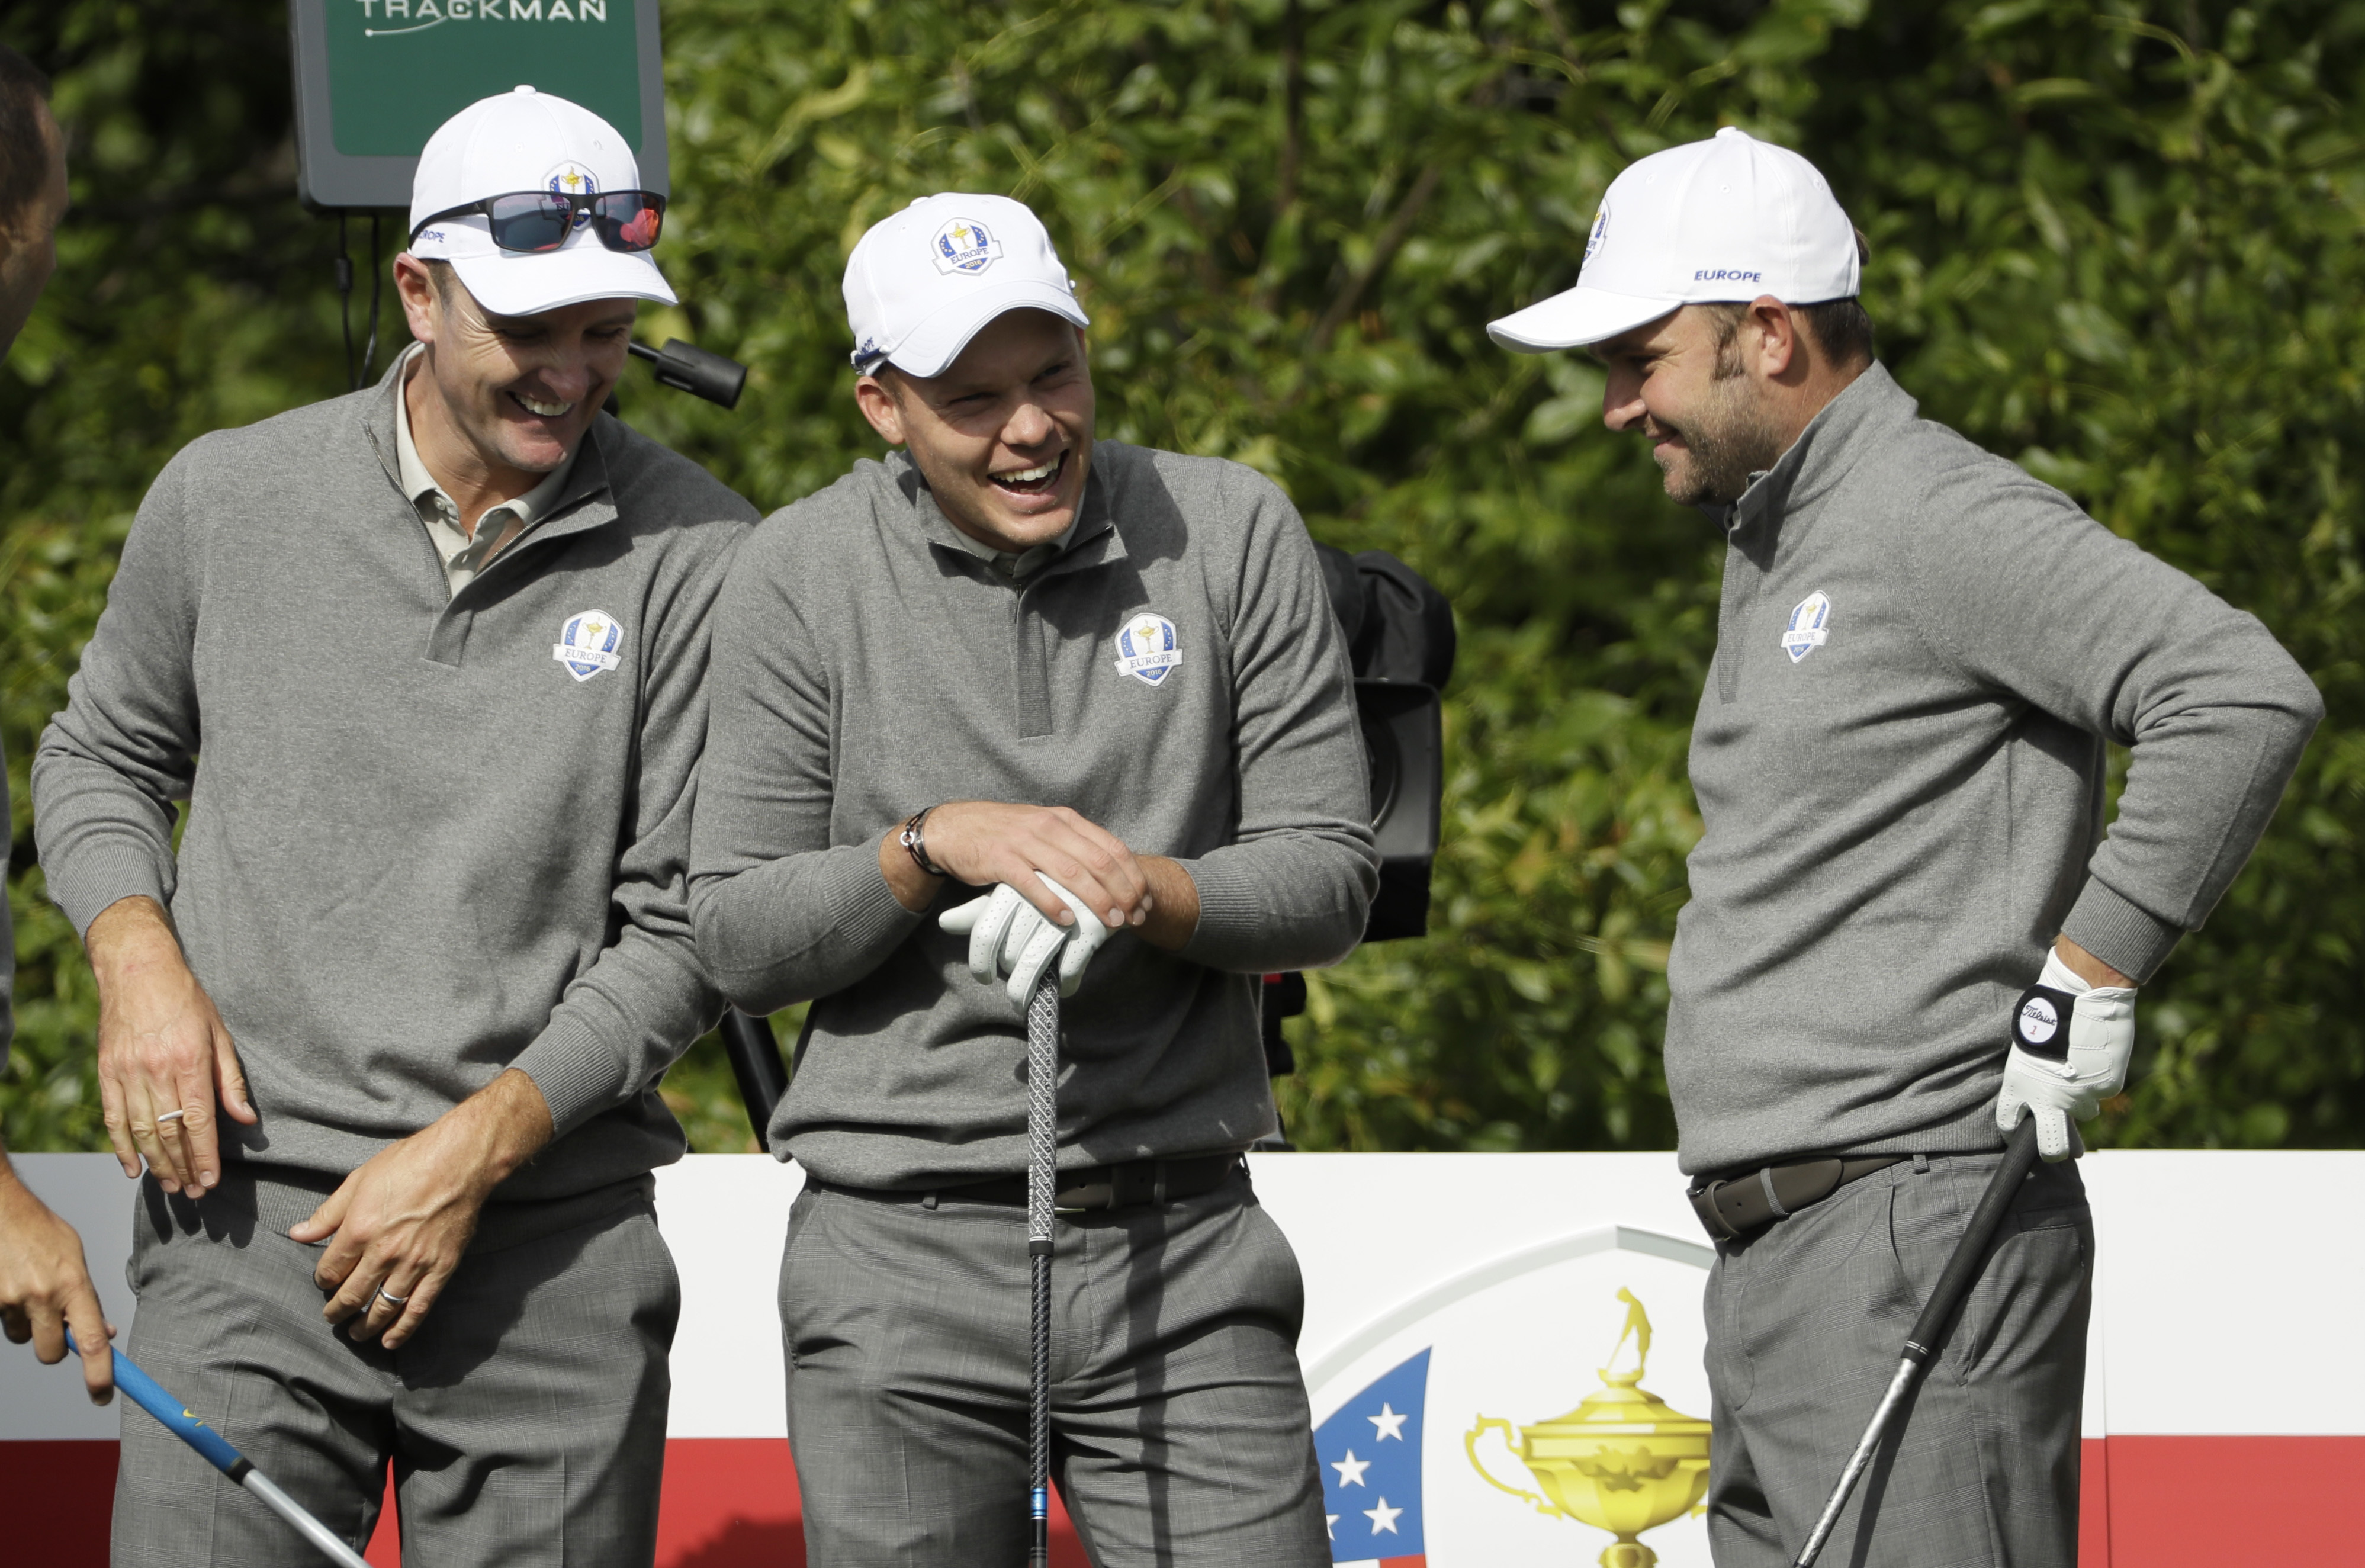 Europe's Justin Rose, left to right, Europe's Danny Willett and Europe's Andy Sullivan have some fun on the 10th tee during a practice round for the Ryder Cup golf tournament Wednesday, Sept. 28, 2016, at Hazeltine National Golf Club in Chaska, Minn. (AP